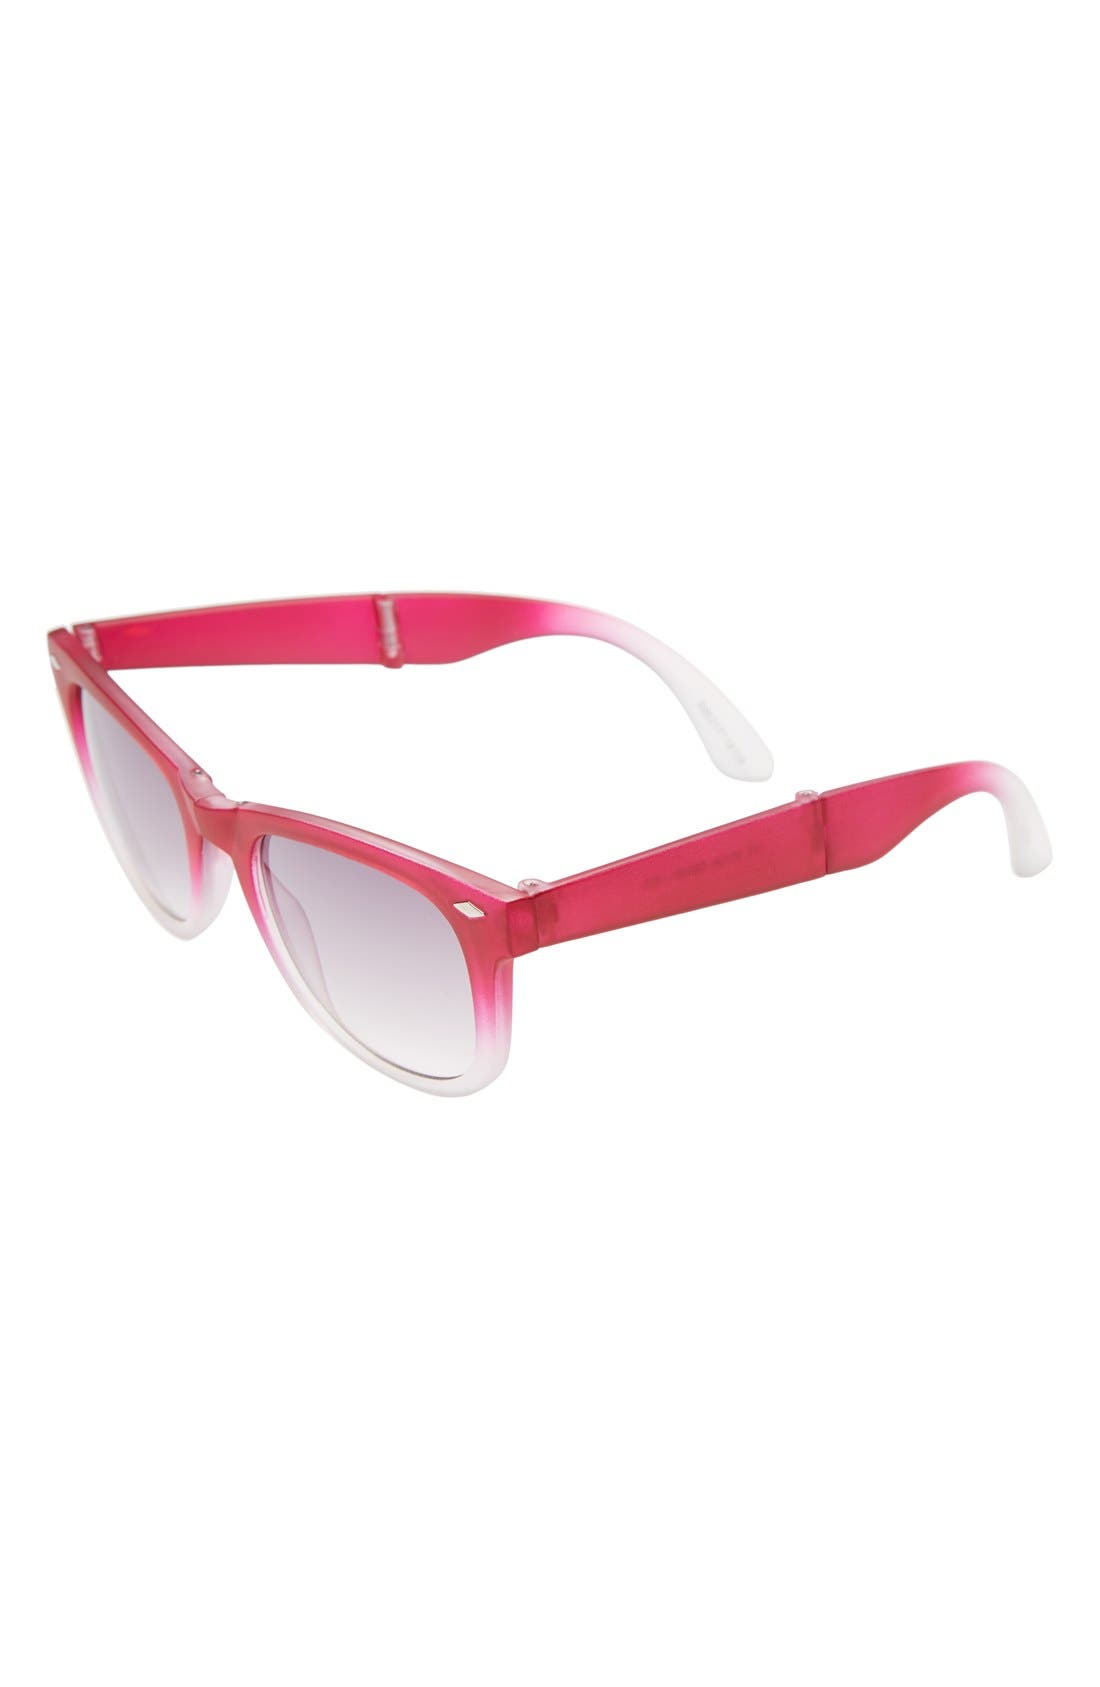 Main Image - Icon Eyewear 75mm Foldable Sunglasses (Girls)